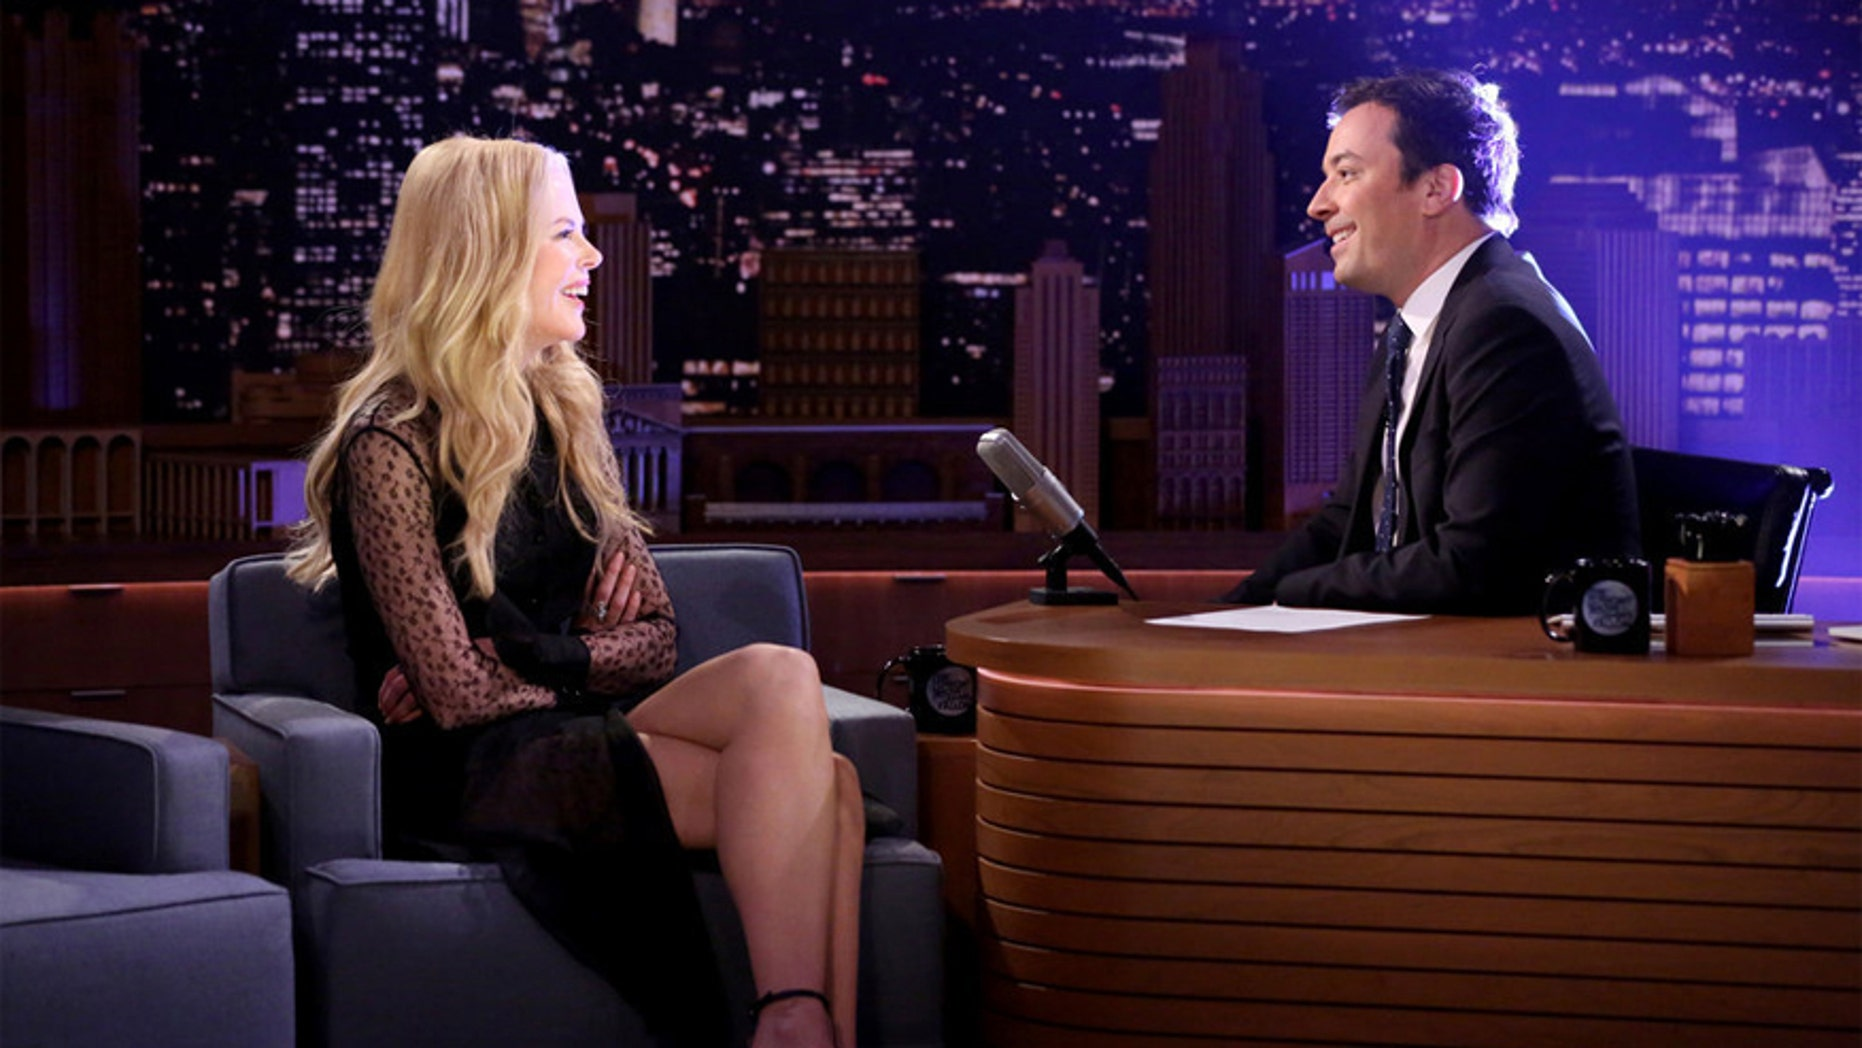 Pictured: (l-r) Actress Nicole Kidman during an interview with host Jimmy Fallon on November 17, 2016.